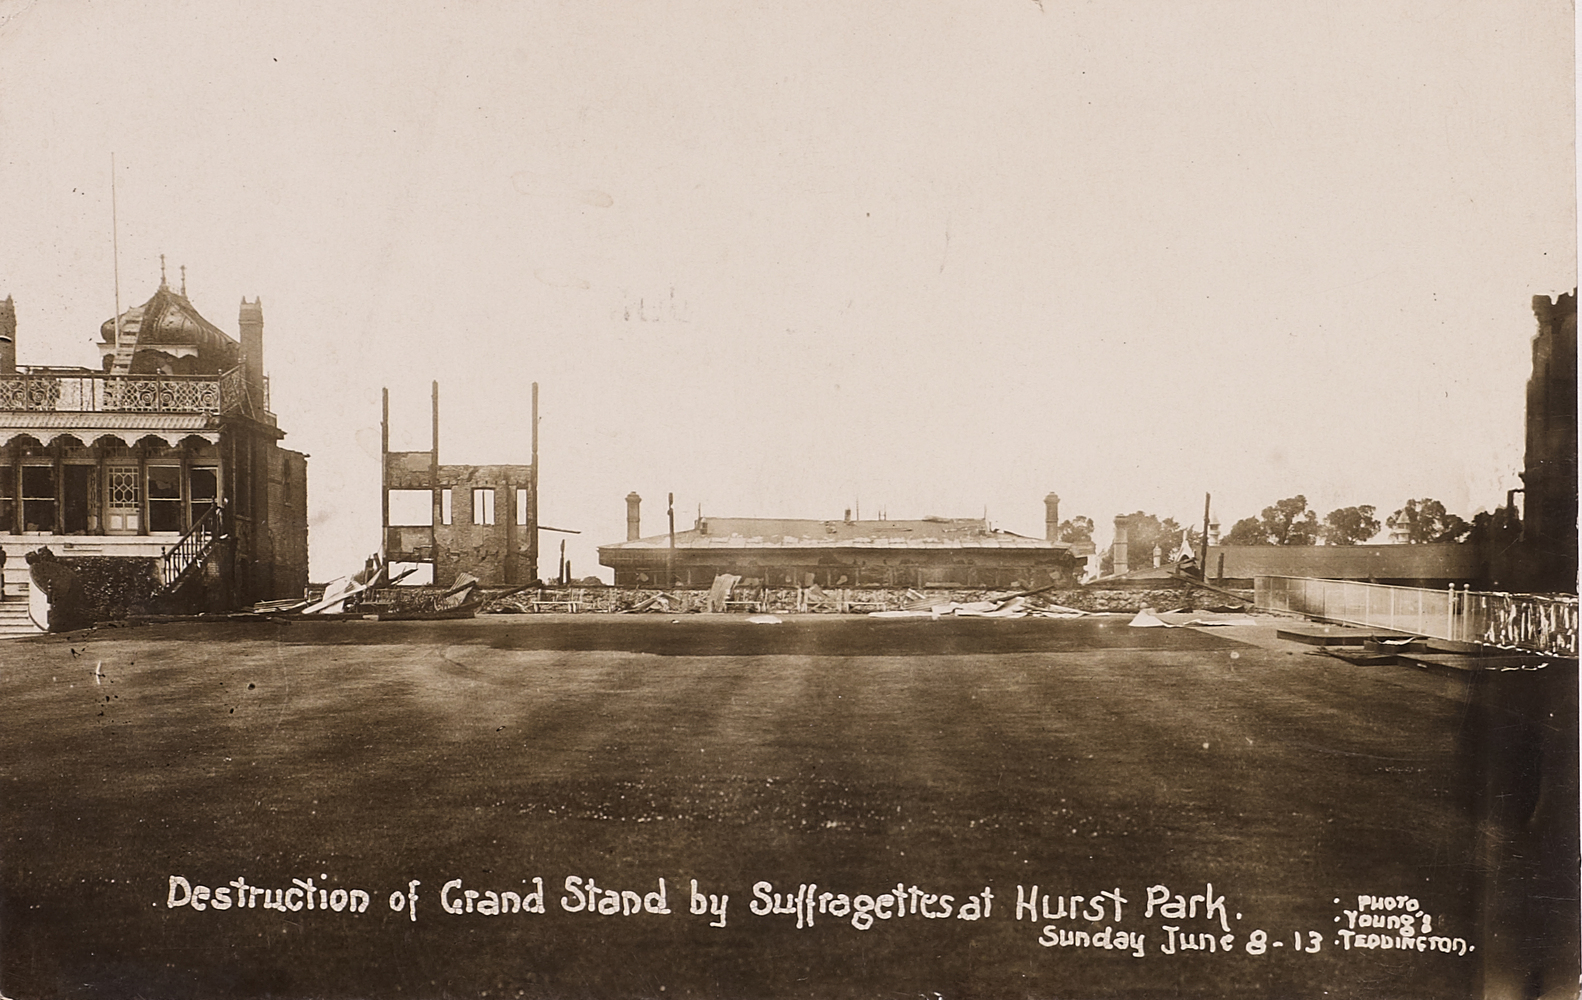 Postcard, Destruction of Grand Stand by Suffragettes at Hurst Park, Sunday 8 June 1913